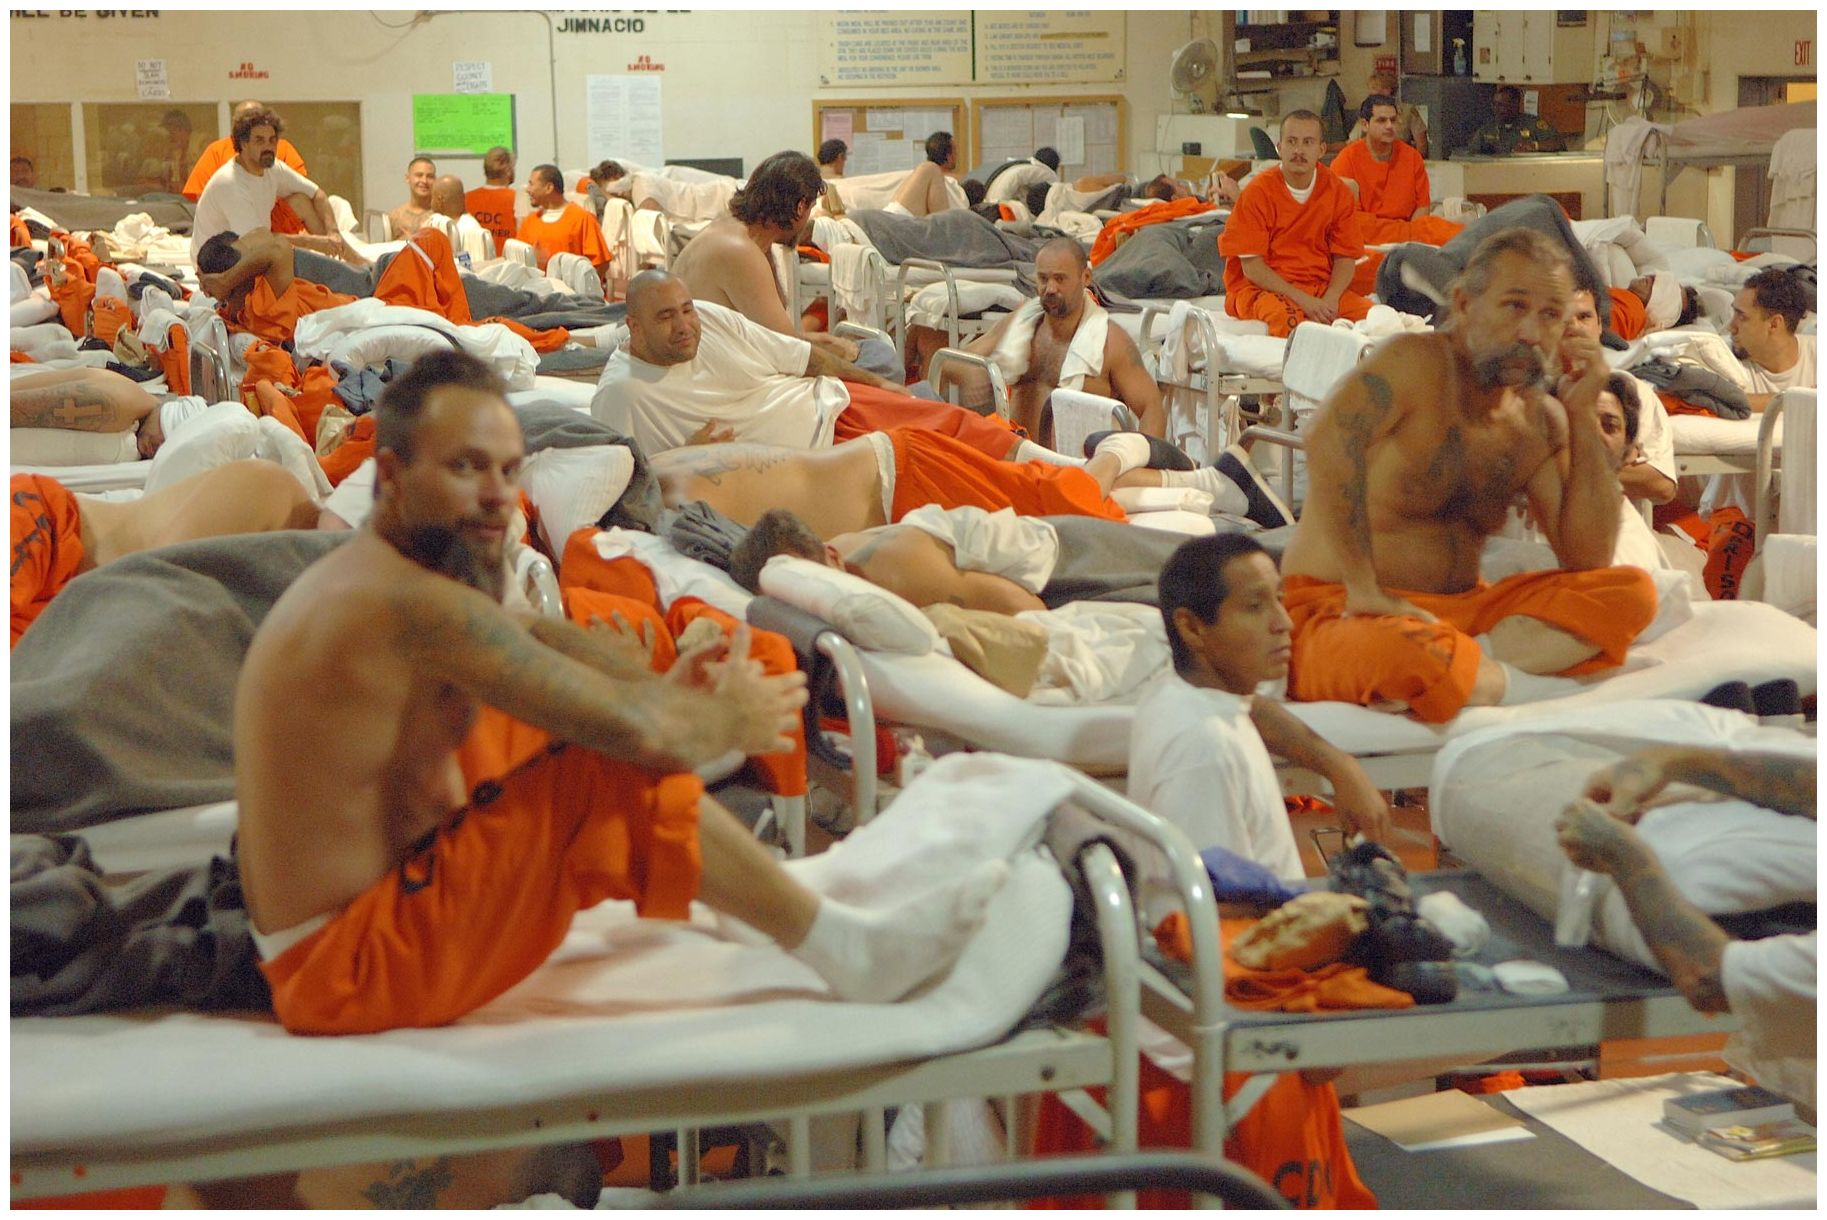 prisoners rights The aclu of southern california is the leading advocate in the region for reducing dependence on incarceration and reforming the conditions inside jails facilities.